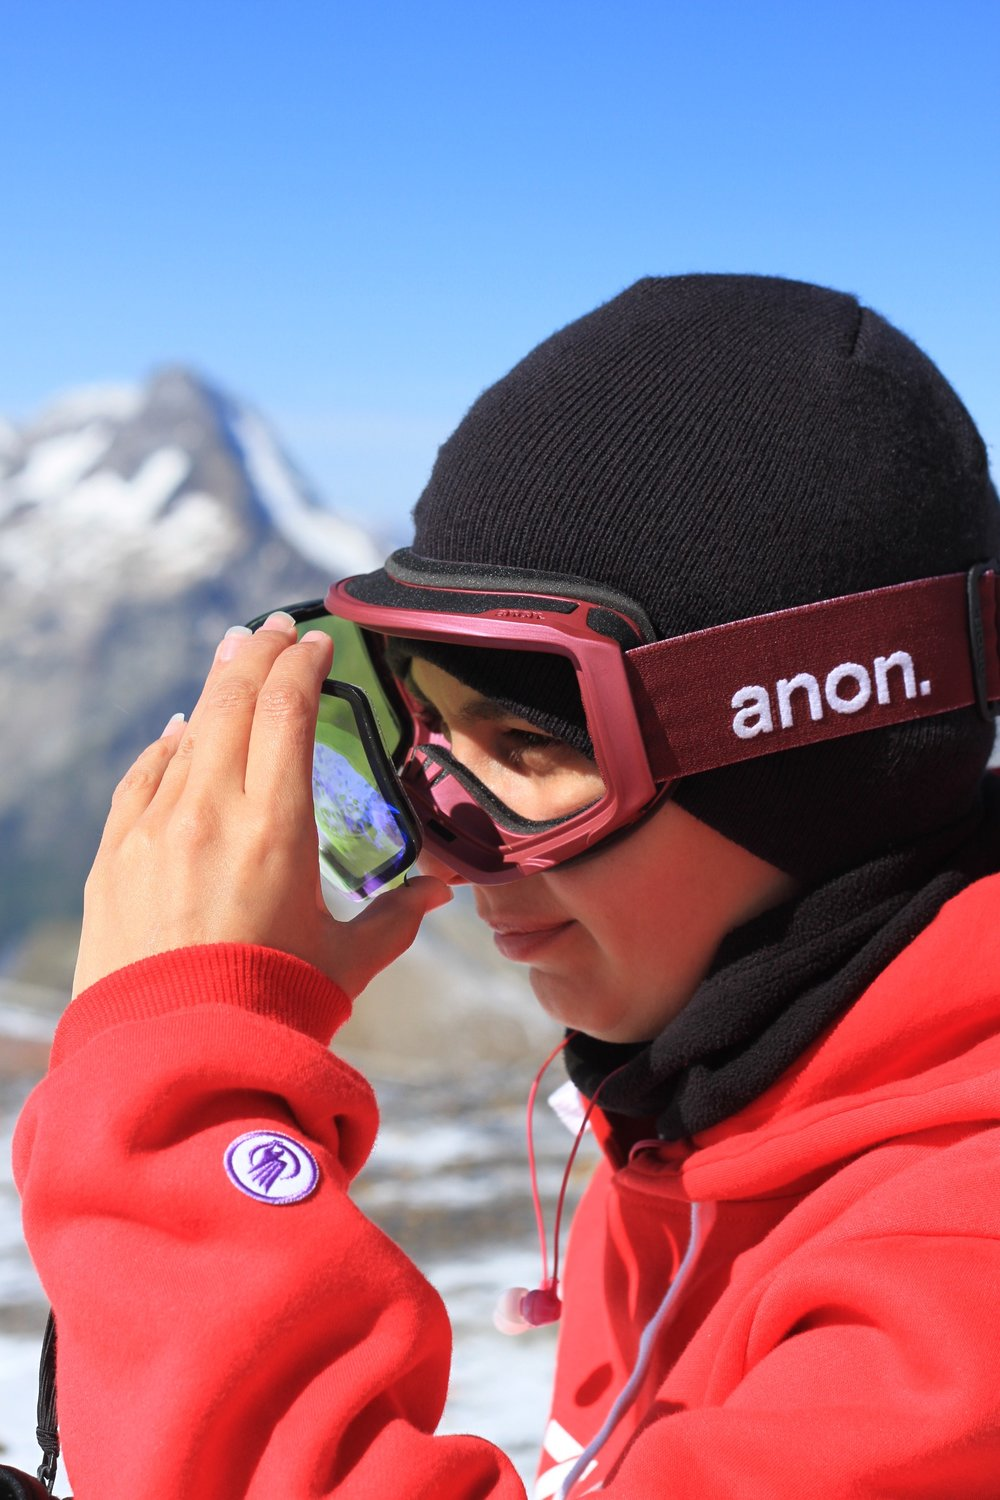 Anon Magnetic system for ease of lens change